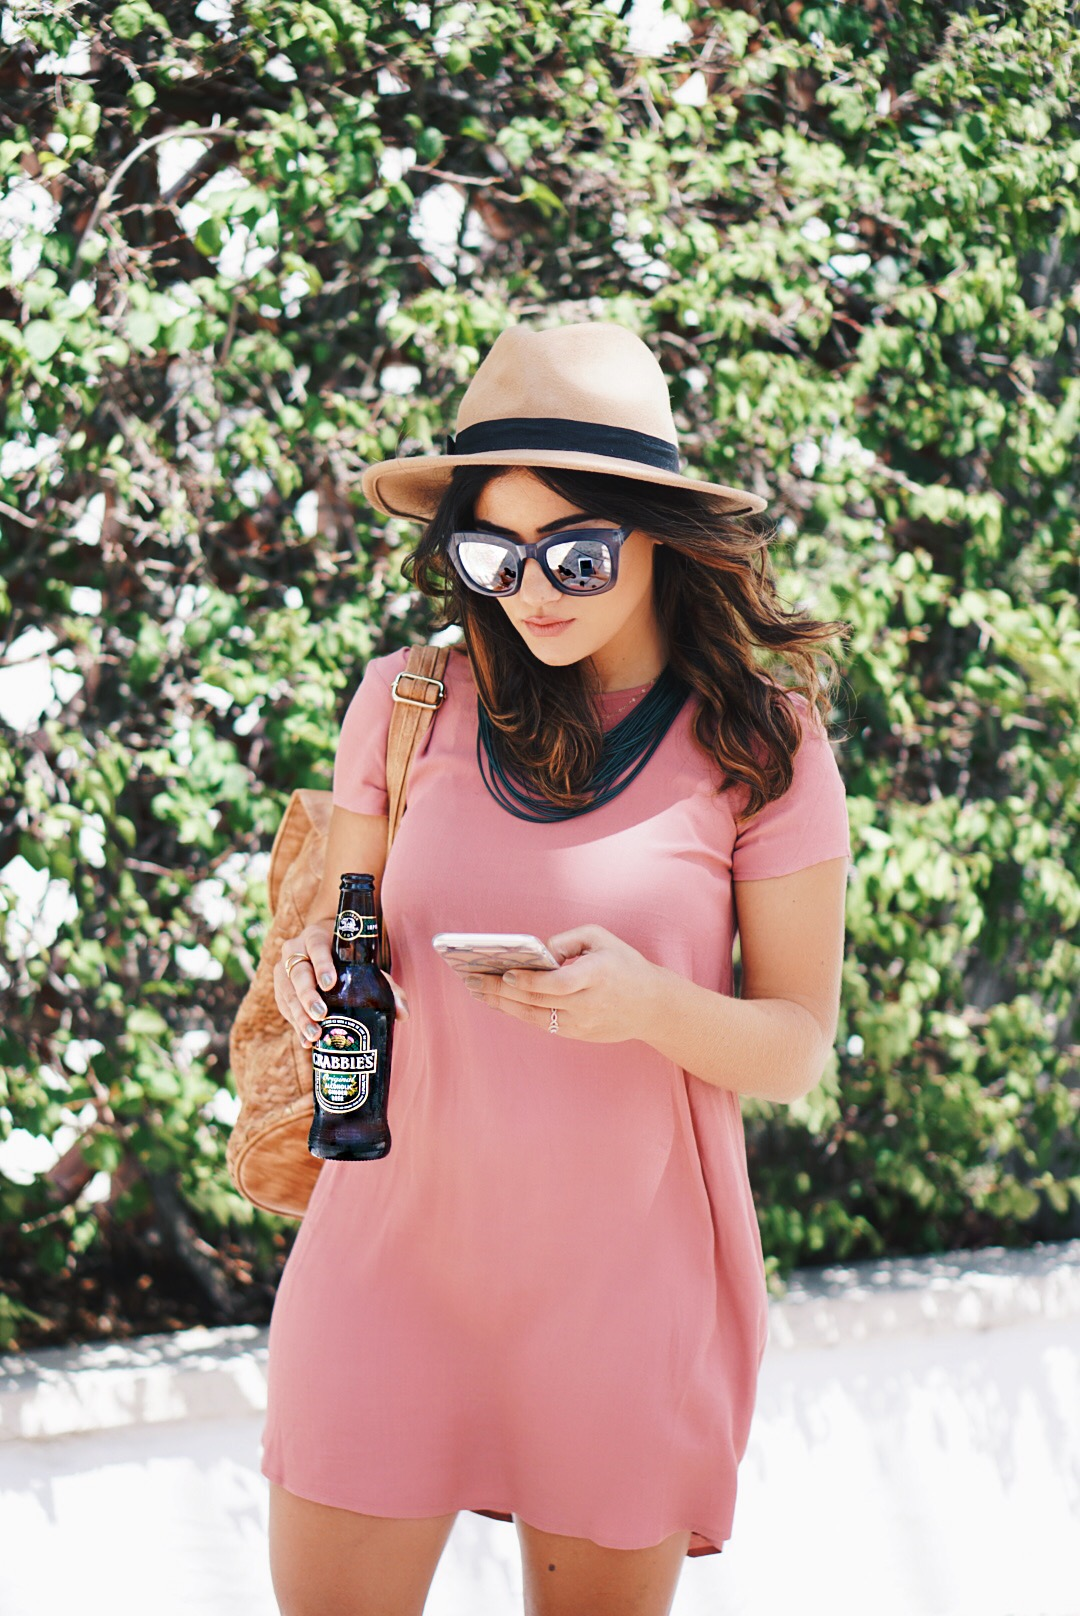 Miami City Guide Featuring Crabbies Alcoholic Ginger Beer